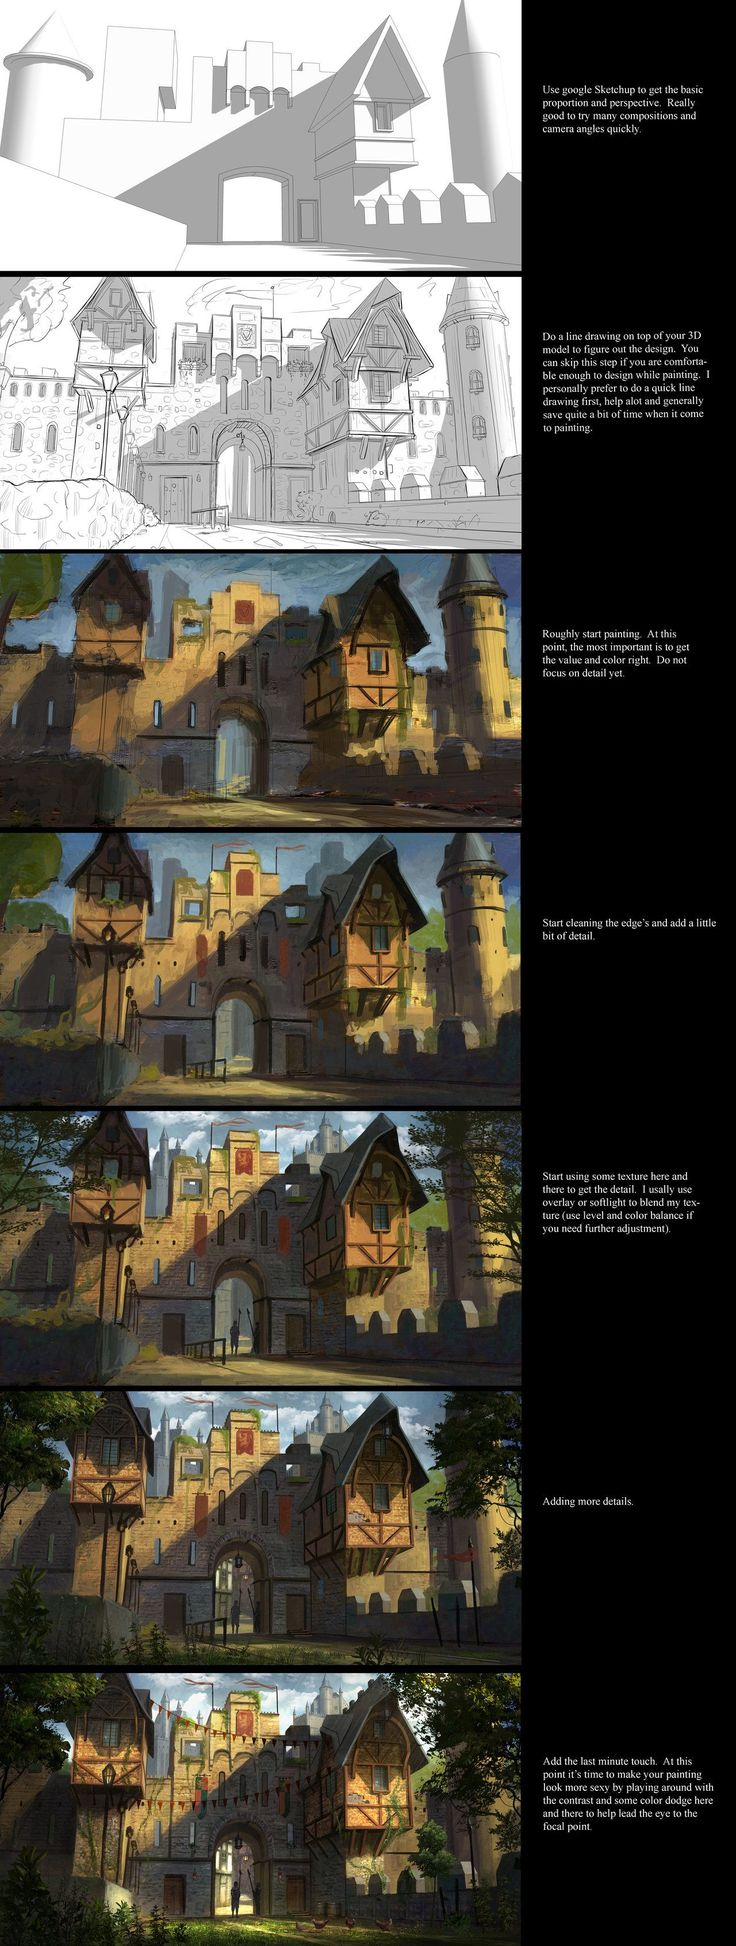 Painting tutorial by JonathanDufresne 3D resource tool how to tutorial instructions | Create your own roleplaying game material w/ RPG Bard: www.rpgbard.com | Writing inspiration for Dungeons and Dragons DND D&D Pathfinder PFRPG Warhammer 40k Star Wars Shadowrun Call of Cthulhu Lord of the Rings LoTR + d20 fantasy science fiction scifi horror design | Not Trusty Sword art: click artwork for source